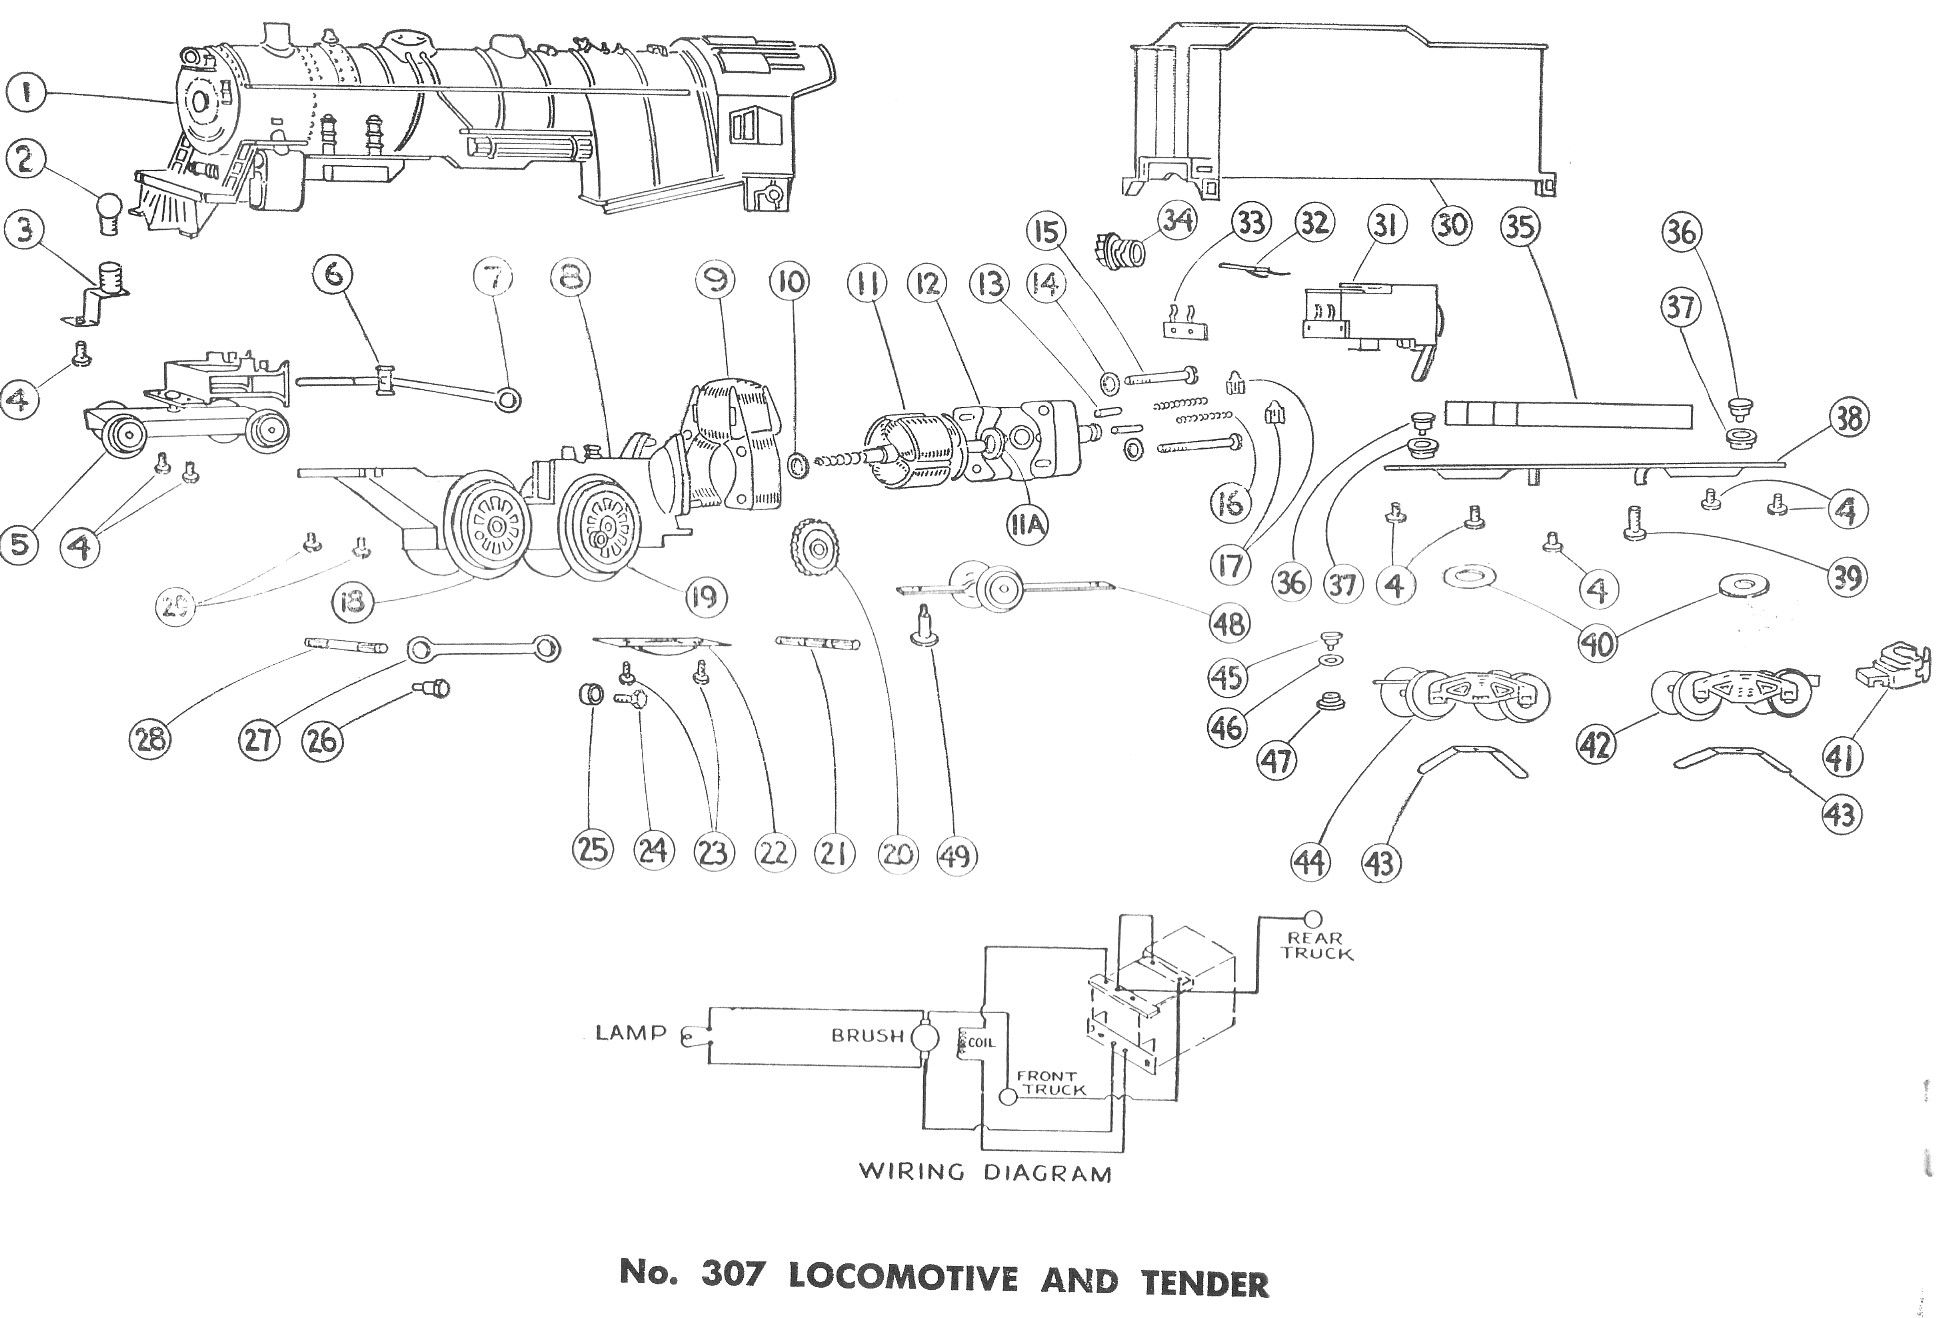 american flyer locomotive 299 307 parts list and diagram traindr american flyer locomotive tender 307 parts list and diagram page 2